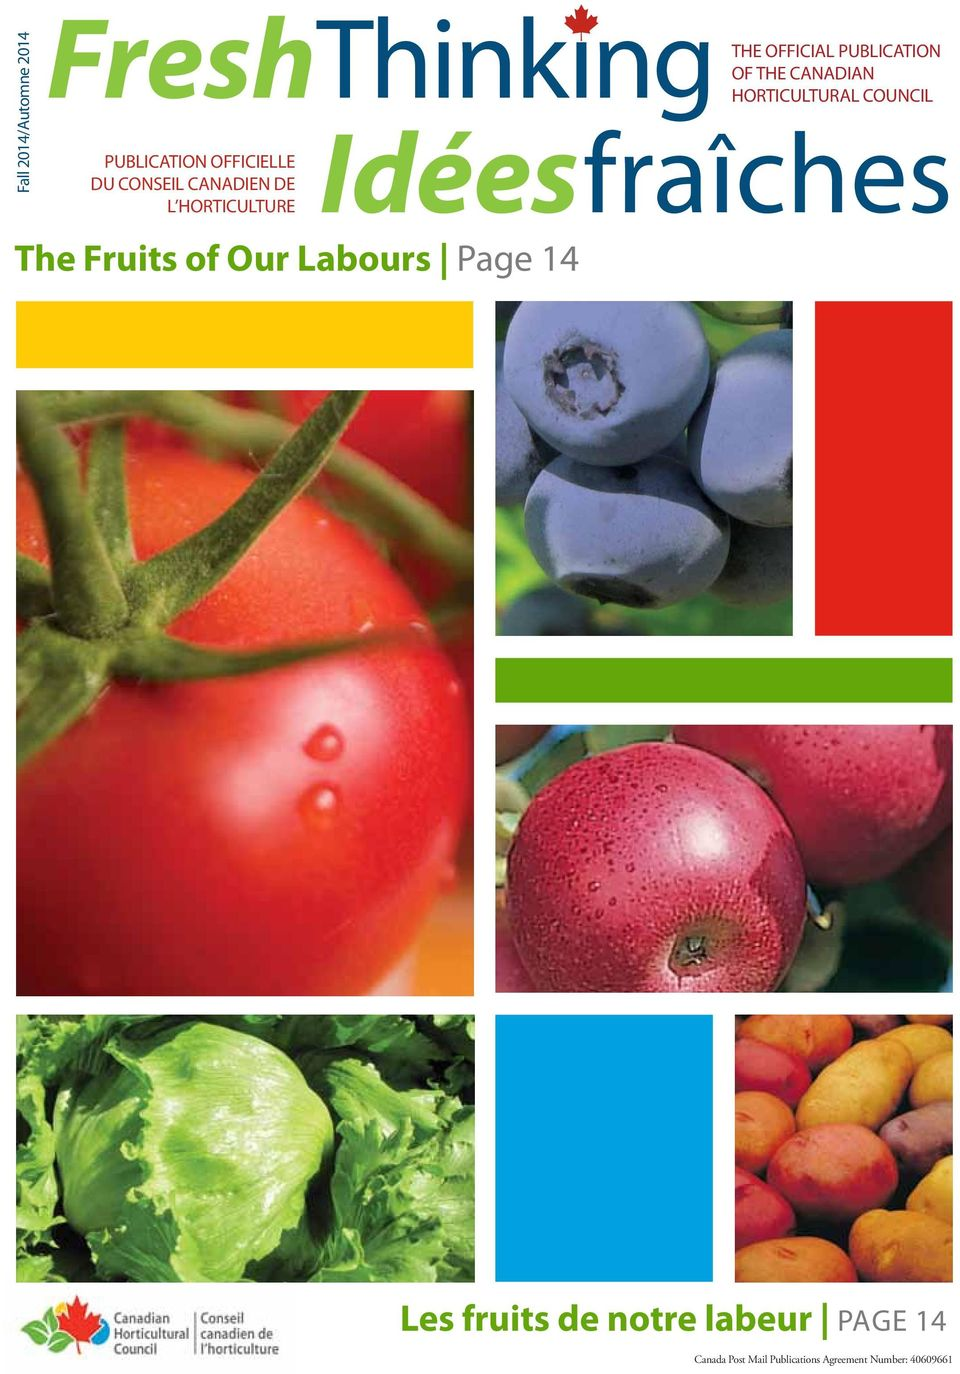 The official publication of the Canadian Horticultural Council Les fruits